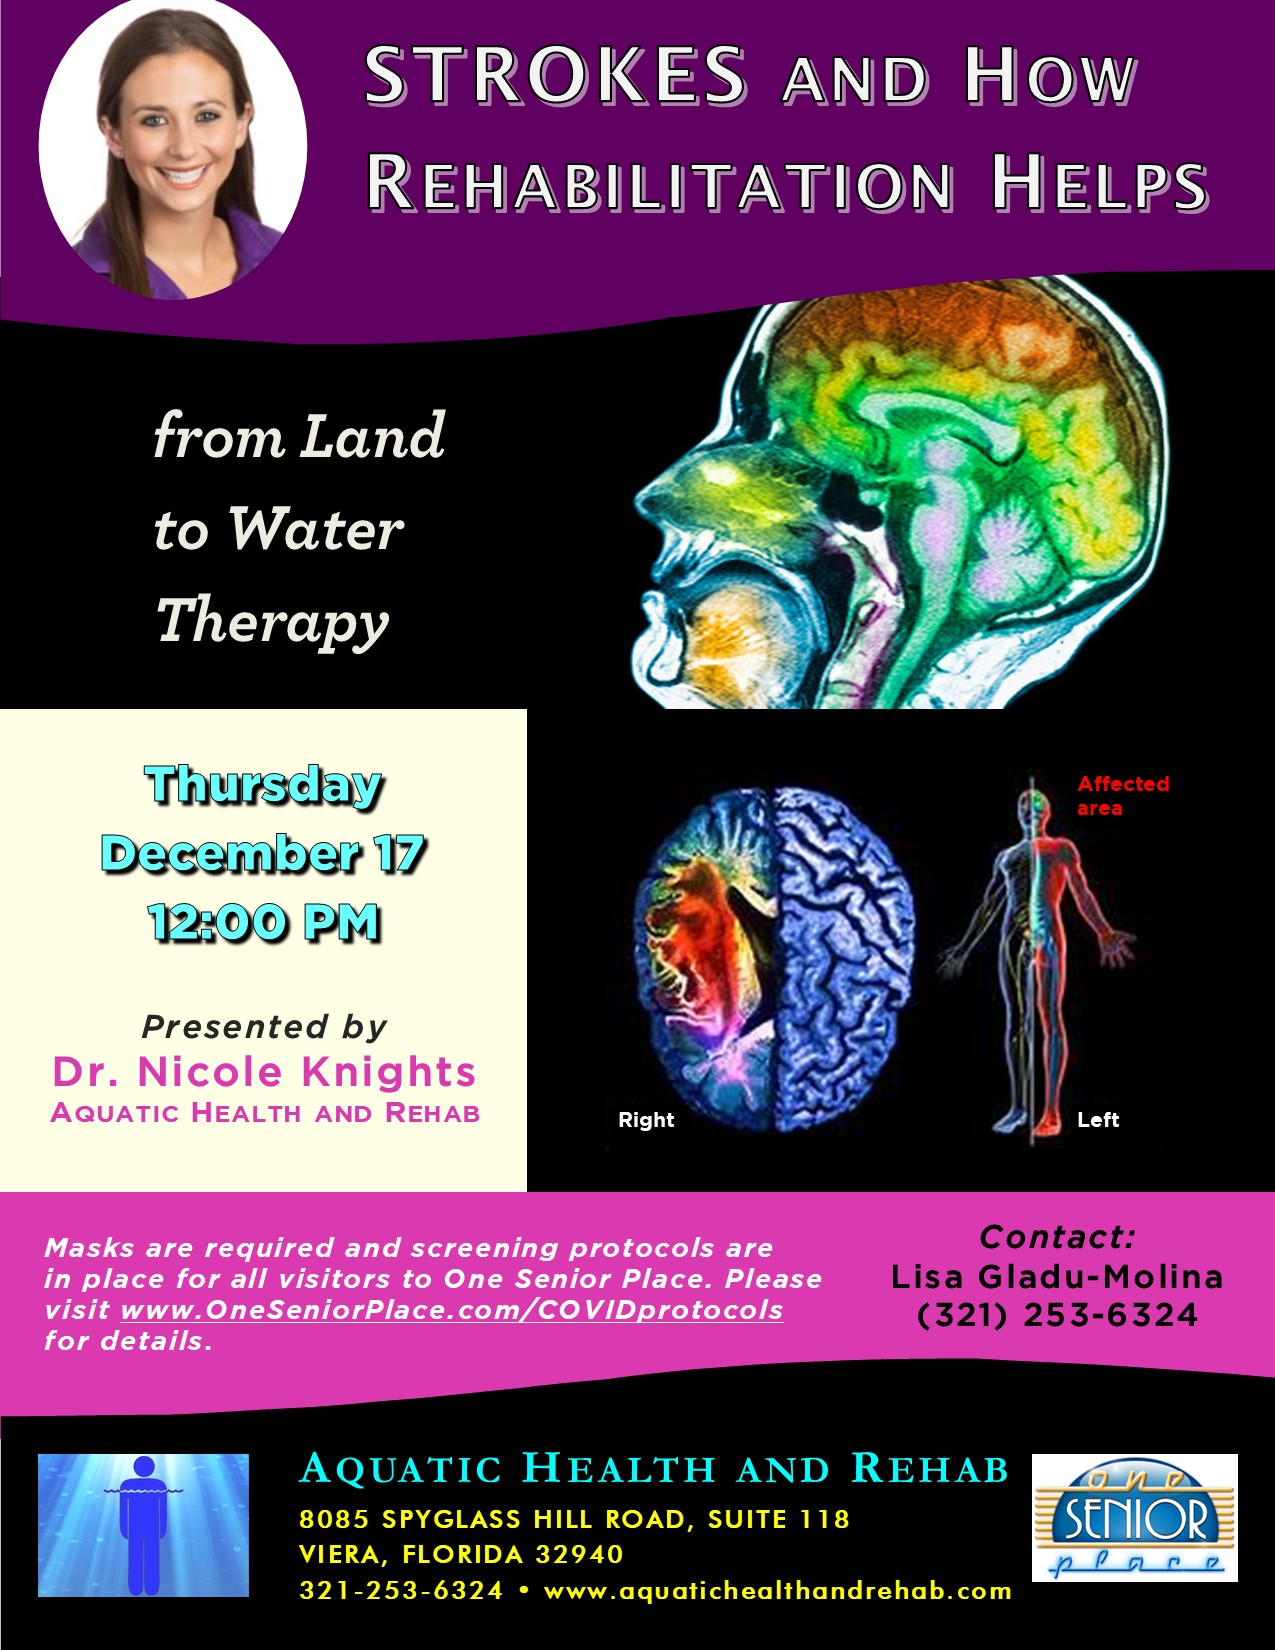 STROKES and How Rehabilitation Helps presented by Dr. Nicole Knights with Aquatic Health and Rehab